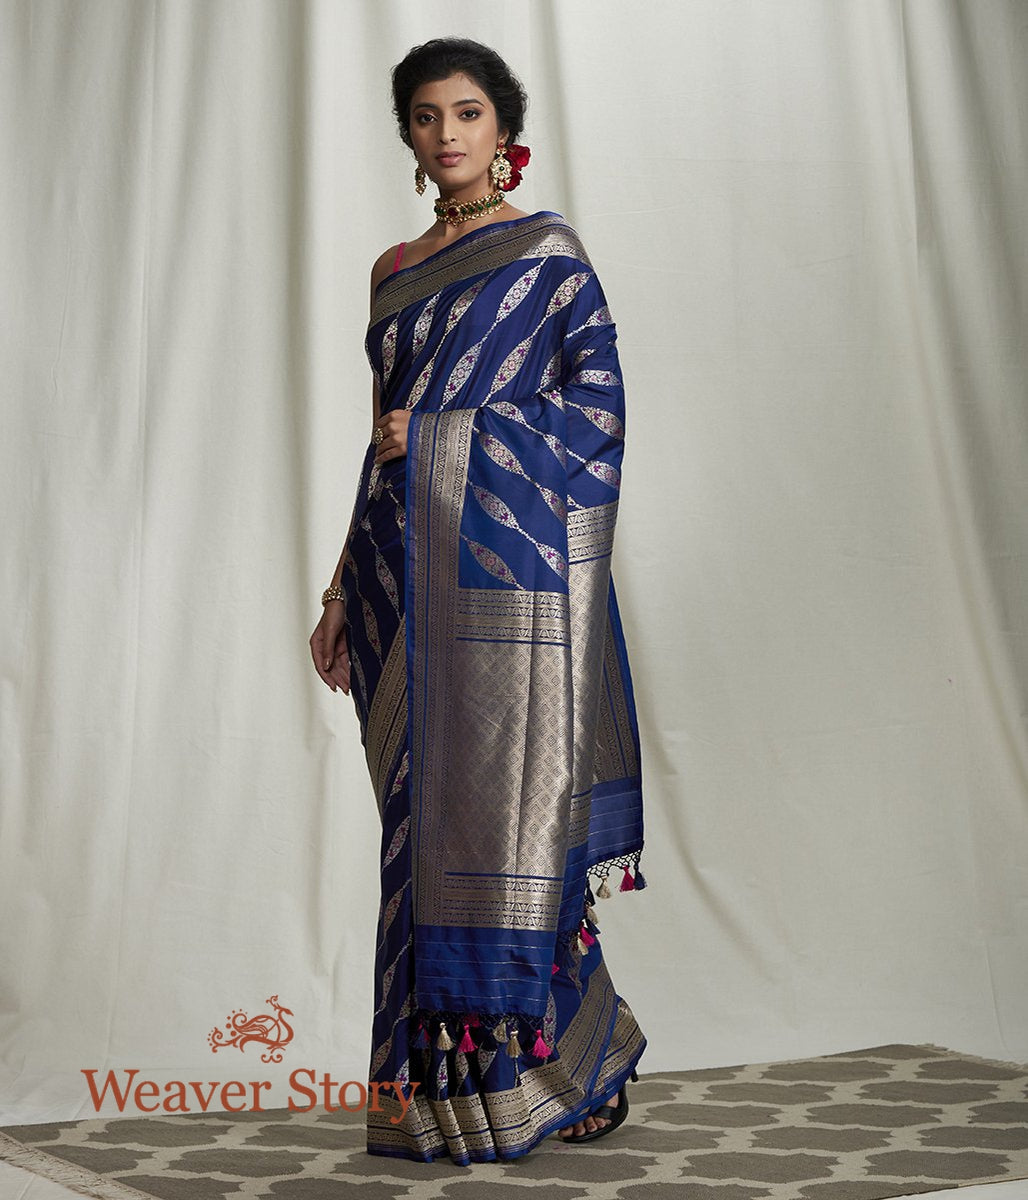 Handwoven Blue Banarasi Saree with Diagonal Meenakari Bel